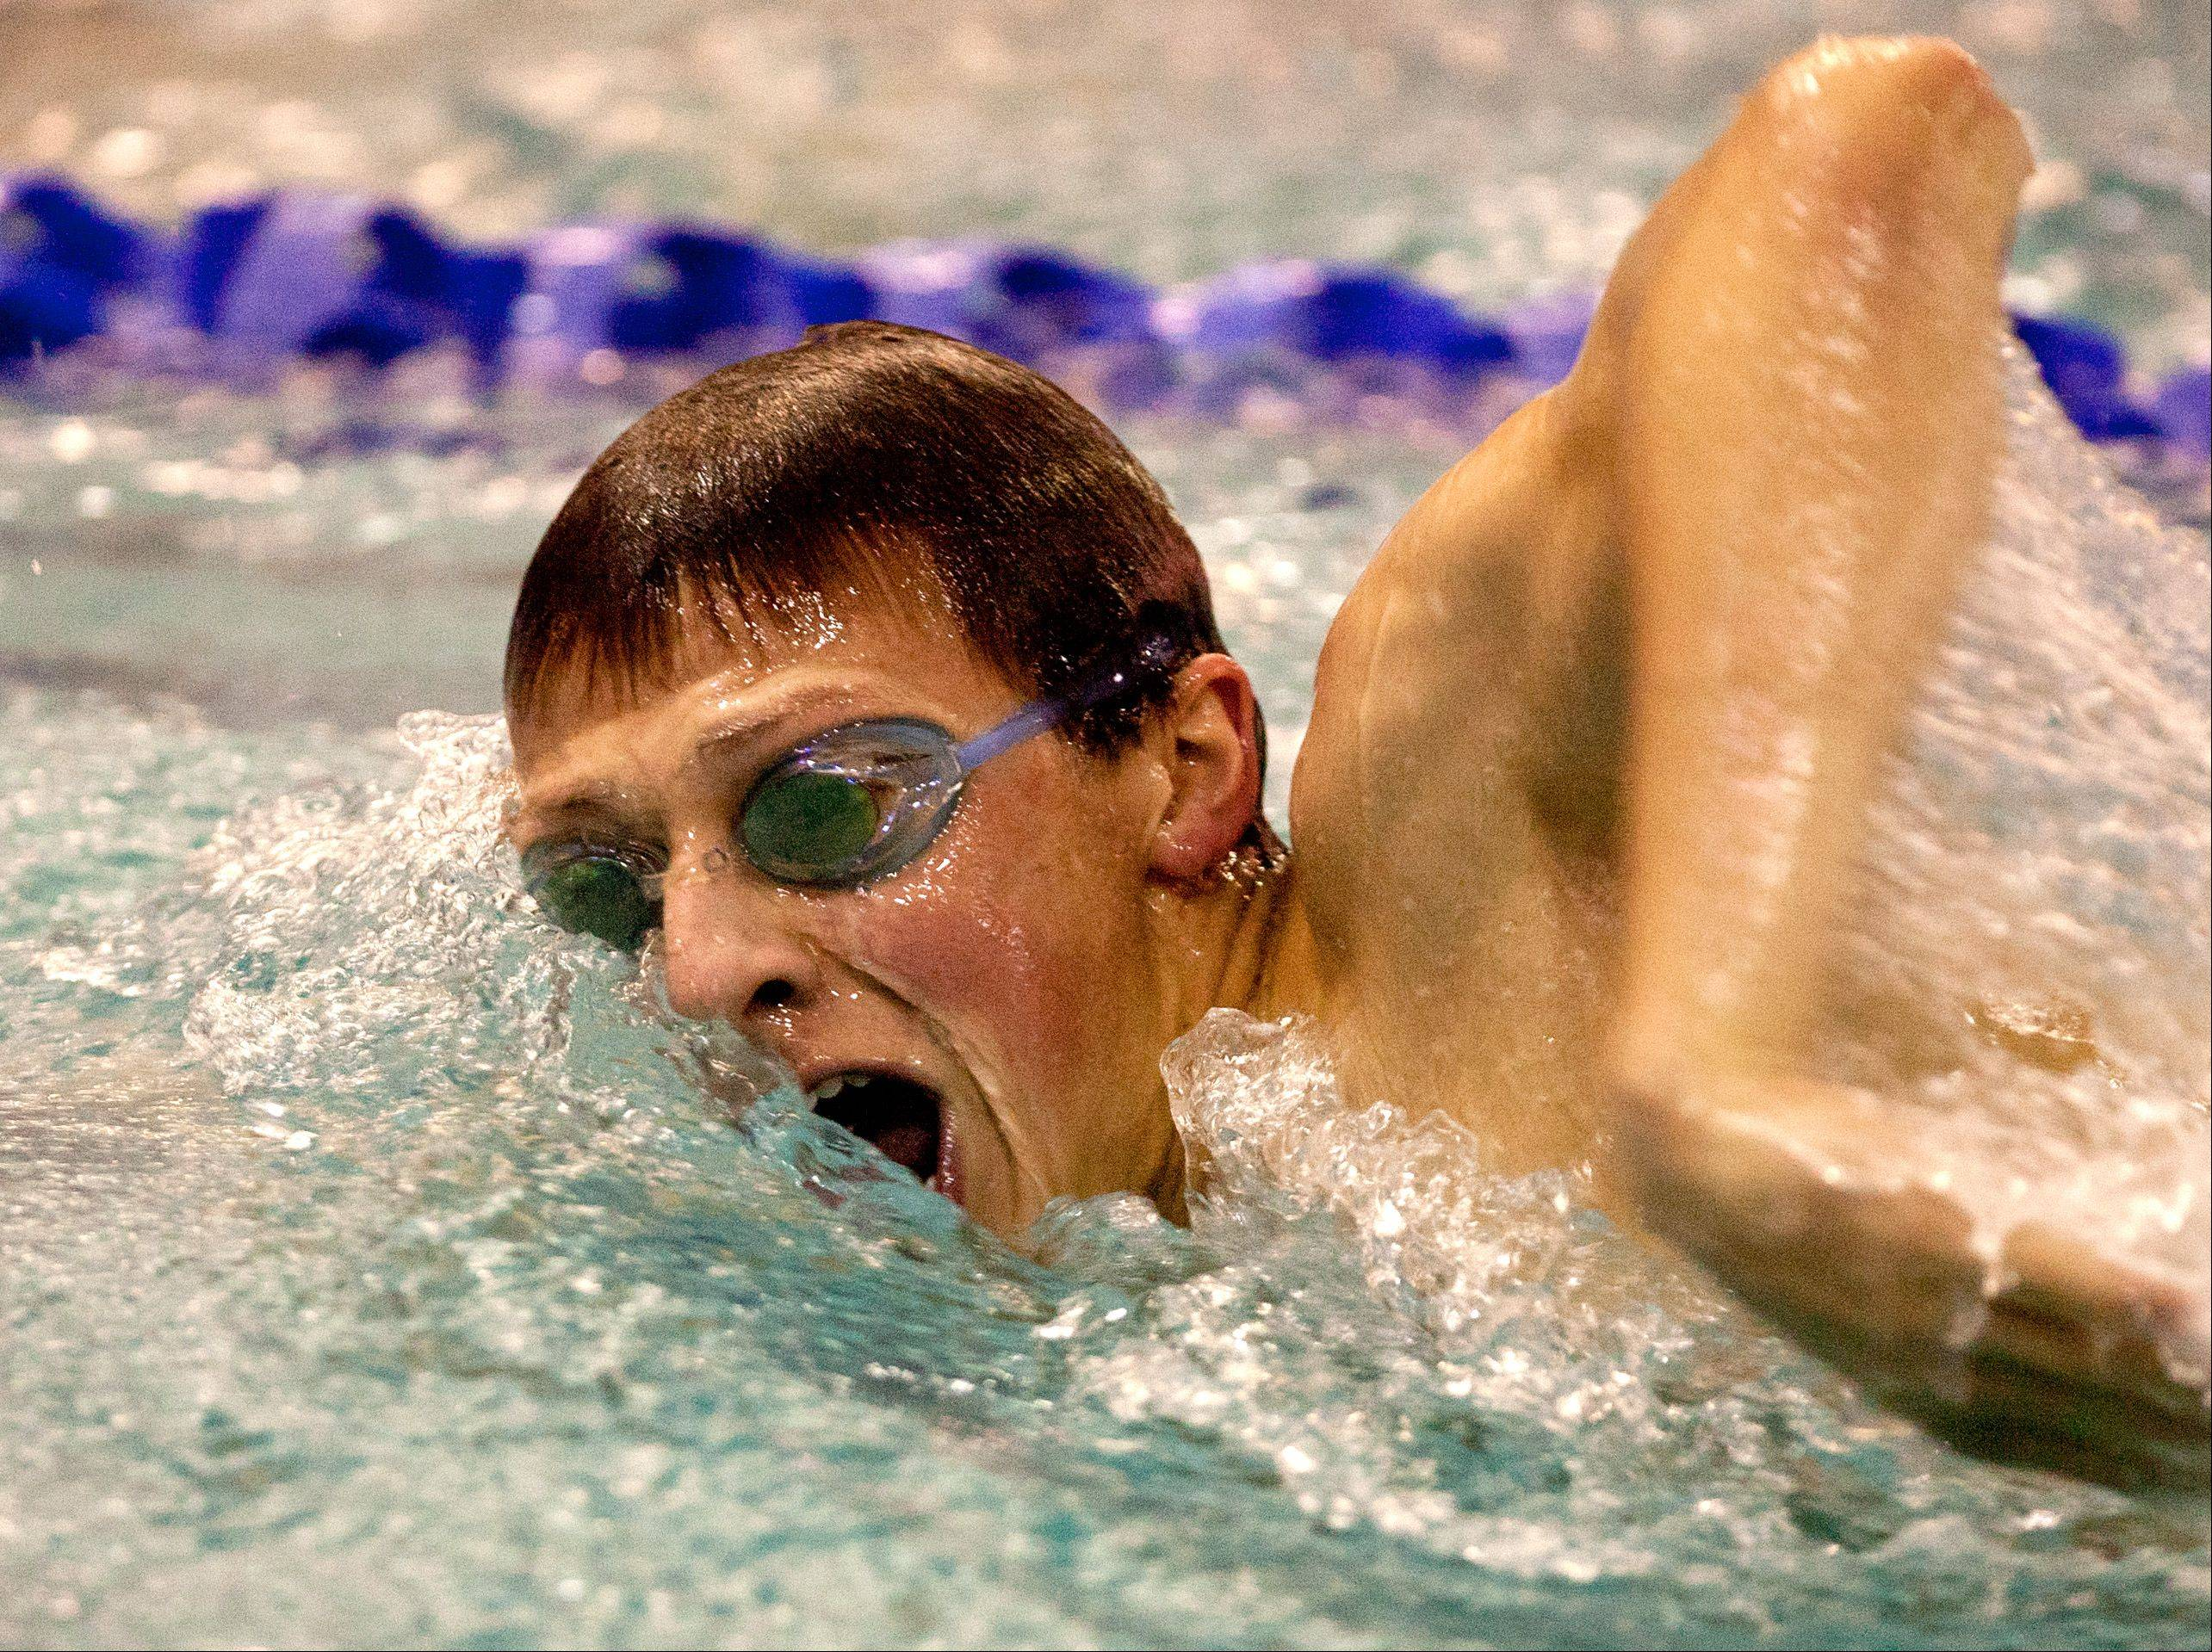 Tamas Rieser, of West Aurora High School, swims the 200 yard freestyle, during the DVC Swimming Conference Championship held at Naperville North High School.